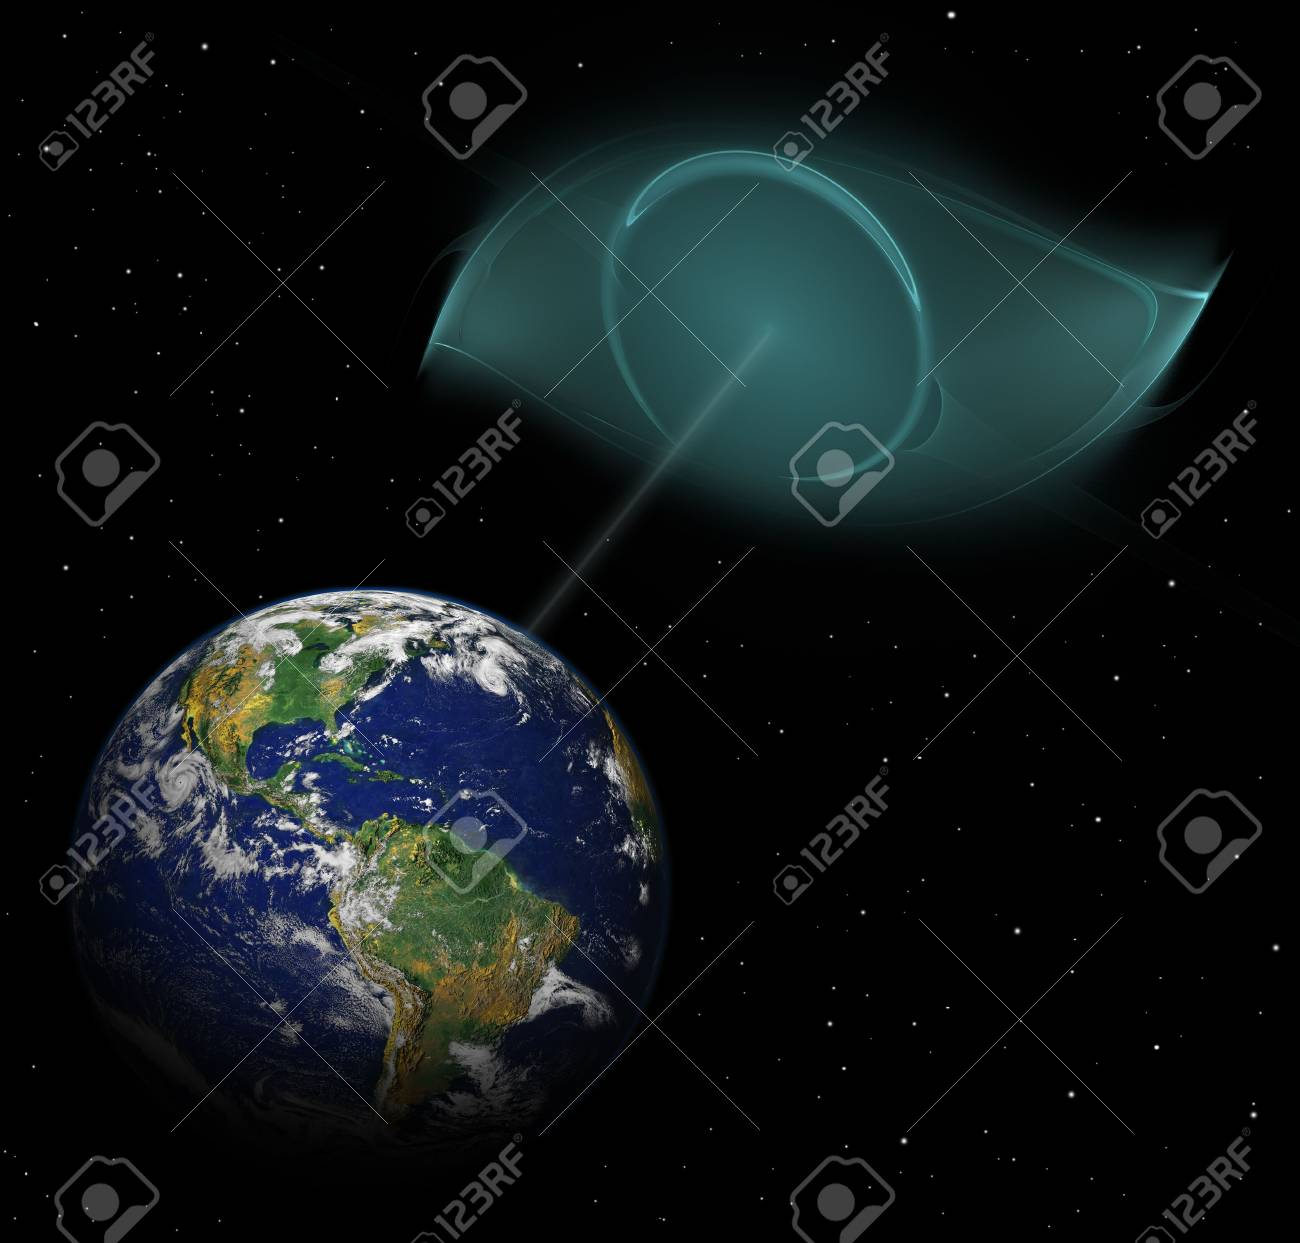 alien eye looking on earth planet - collage Stock Photo - 6669641